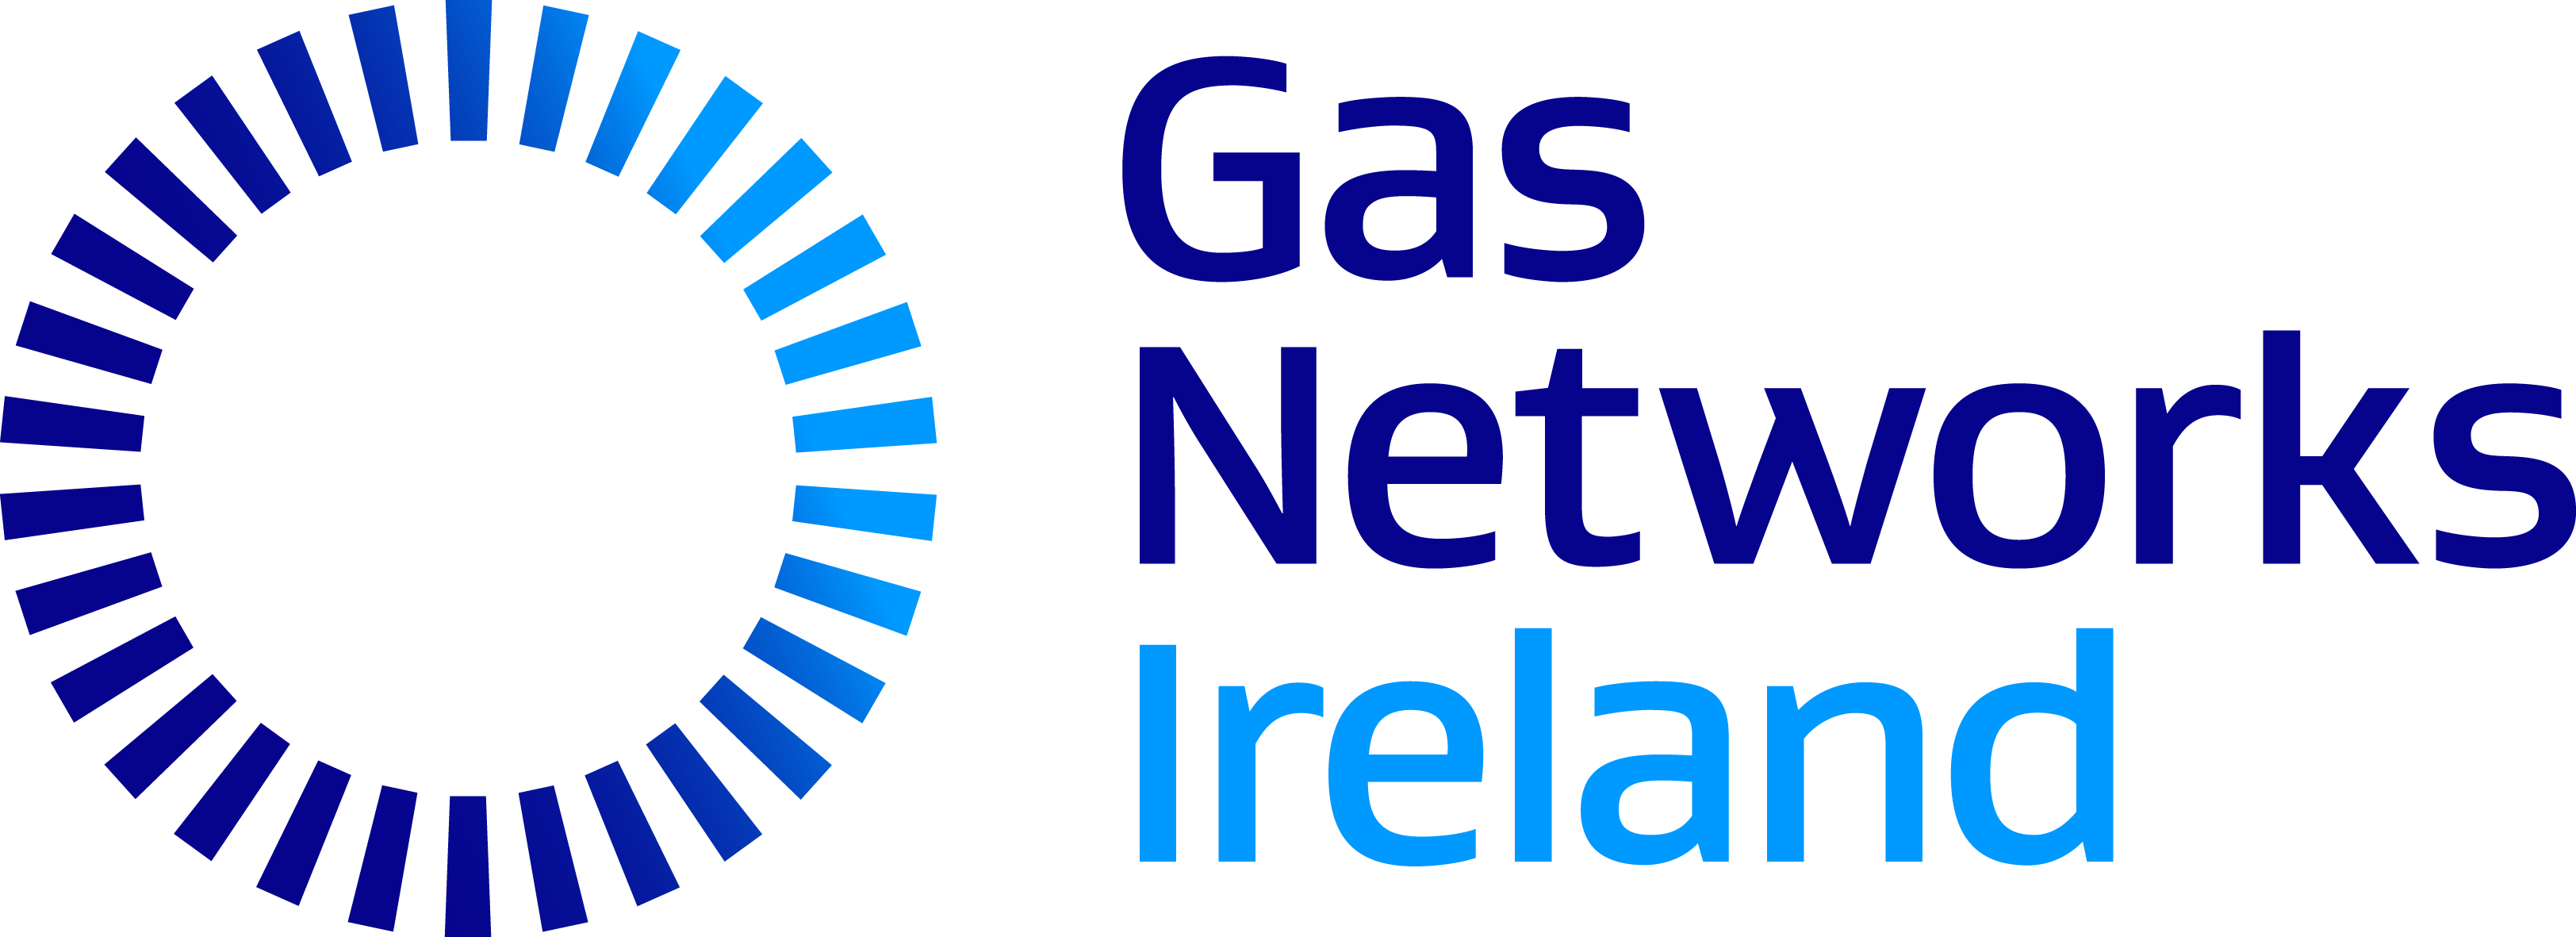 Gas Networld Ireland logo